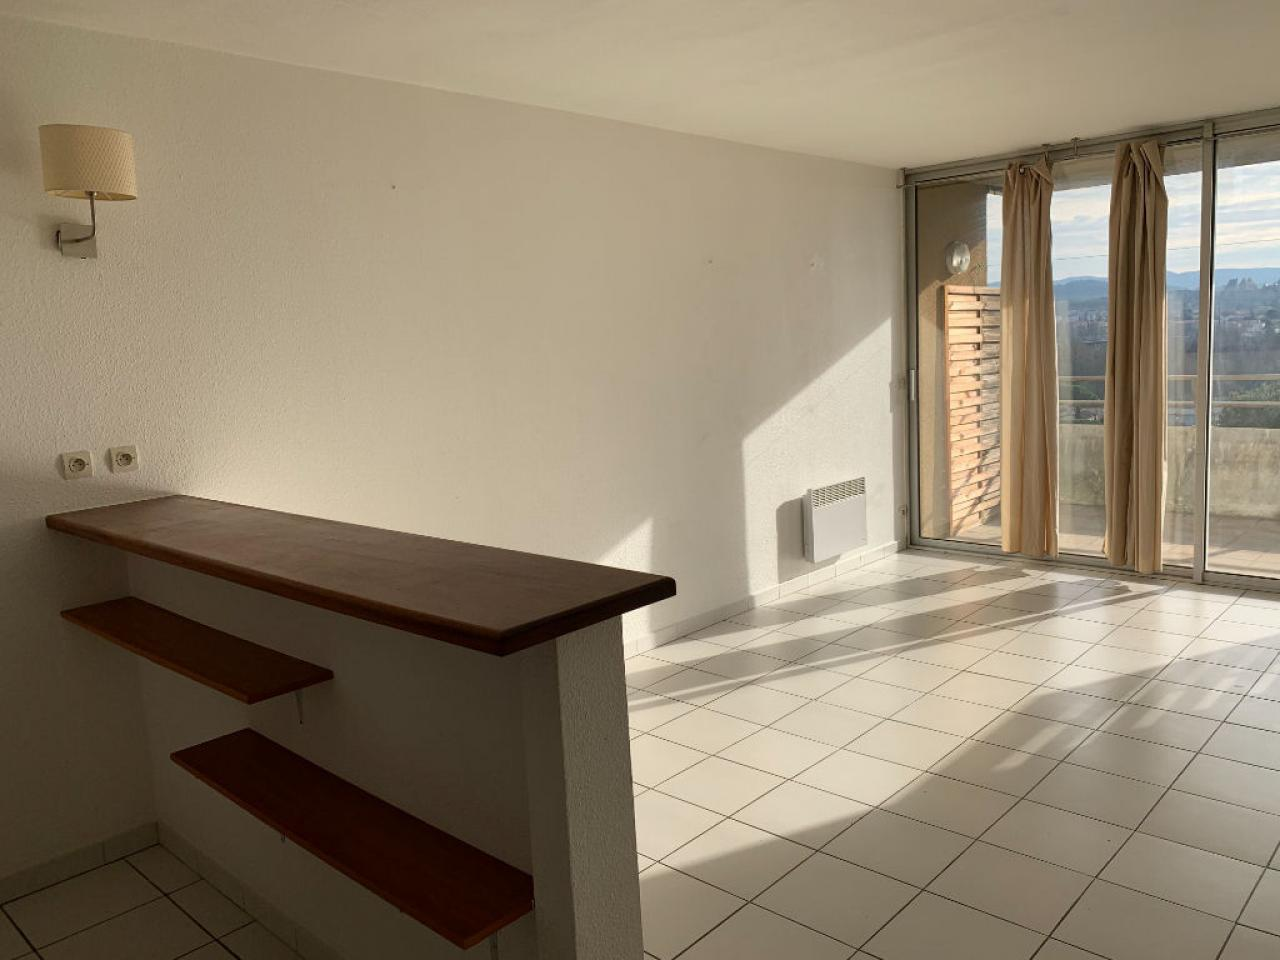 Apartment CARCASSONNE | 569 € / month